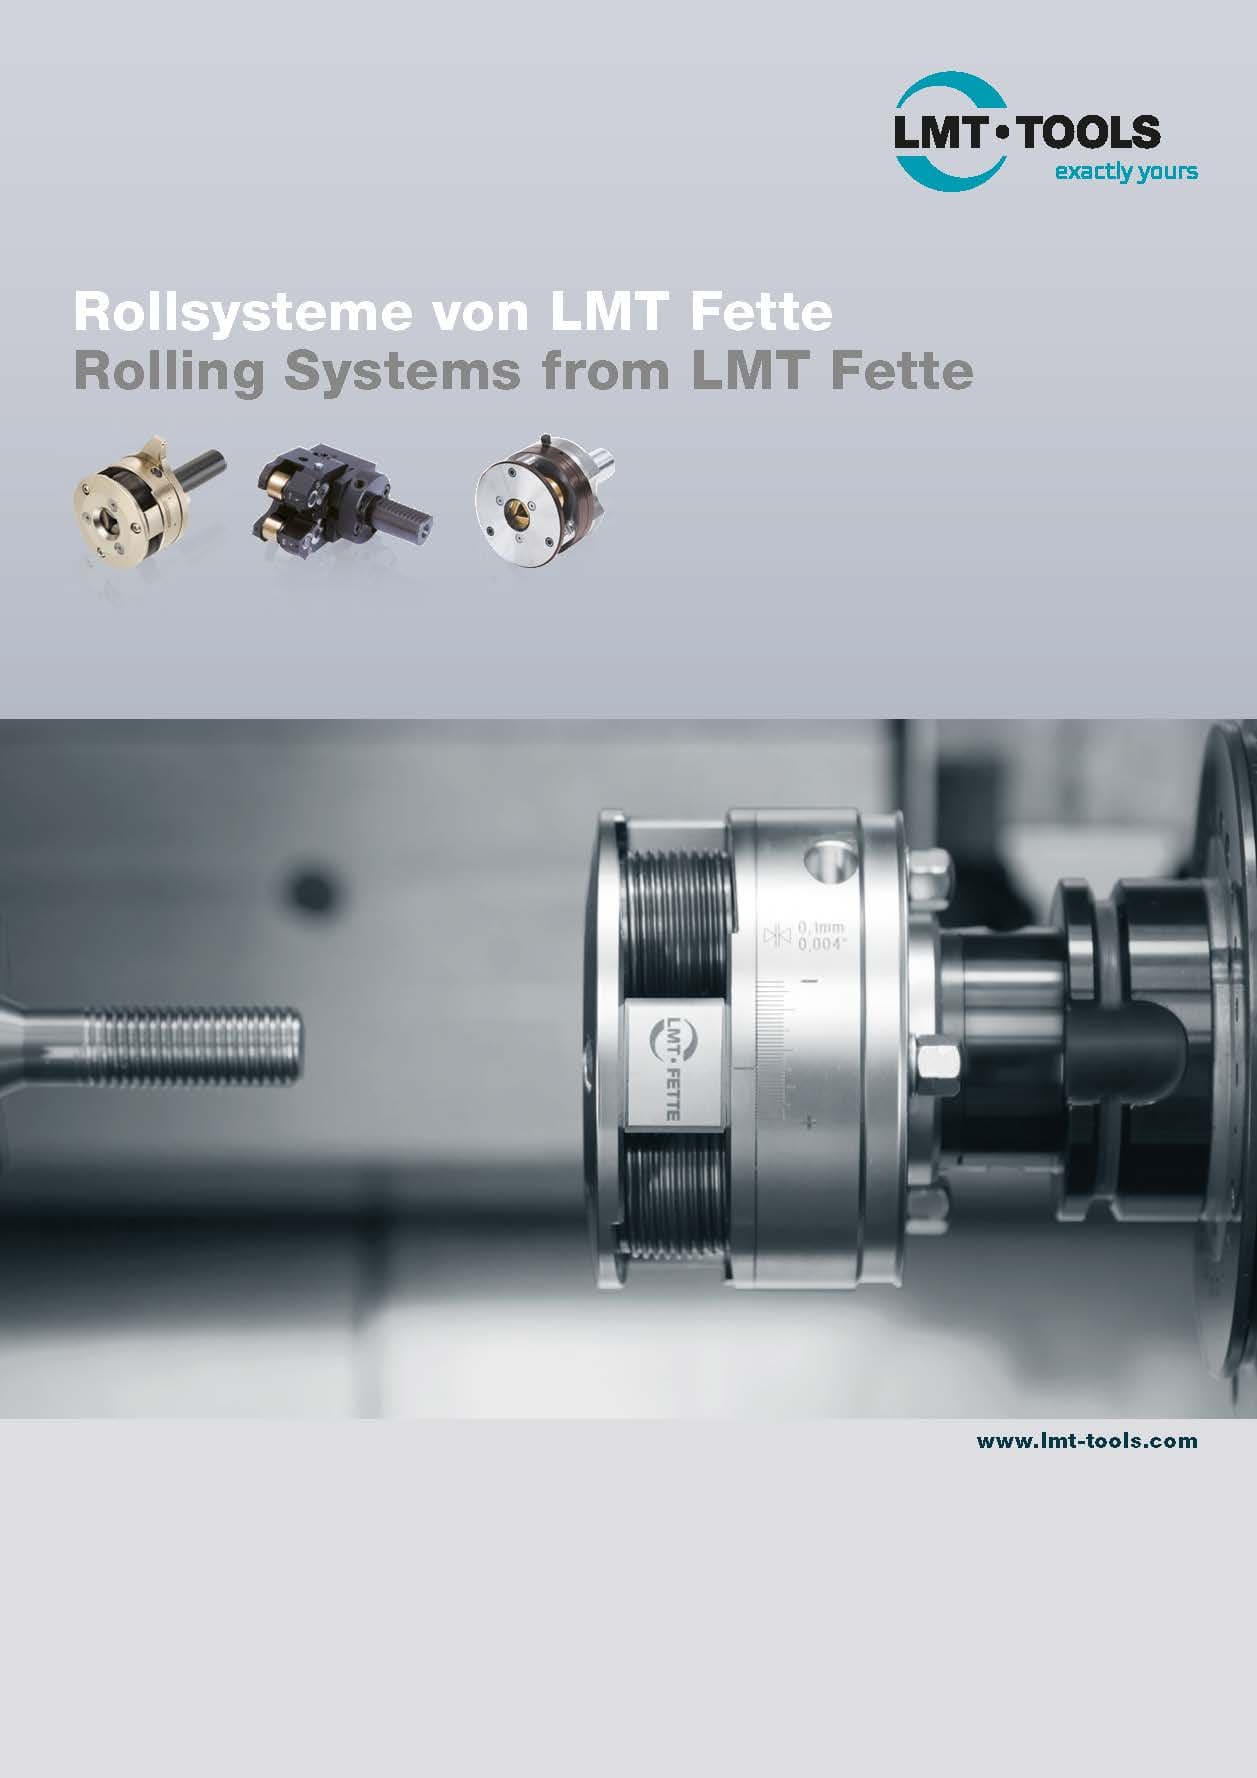 Rolling Systems from LMT Fette